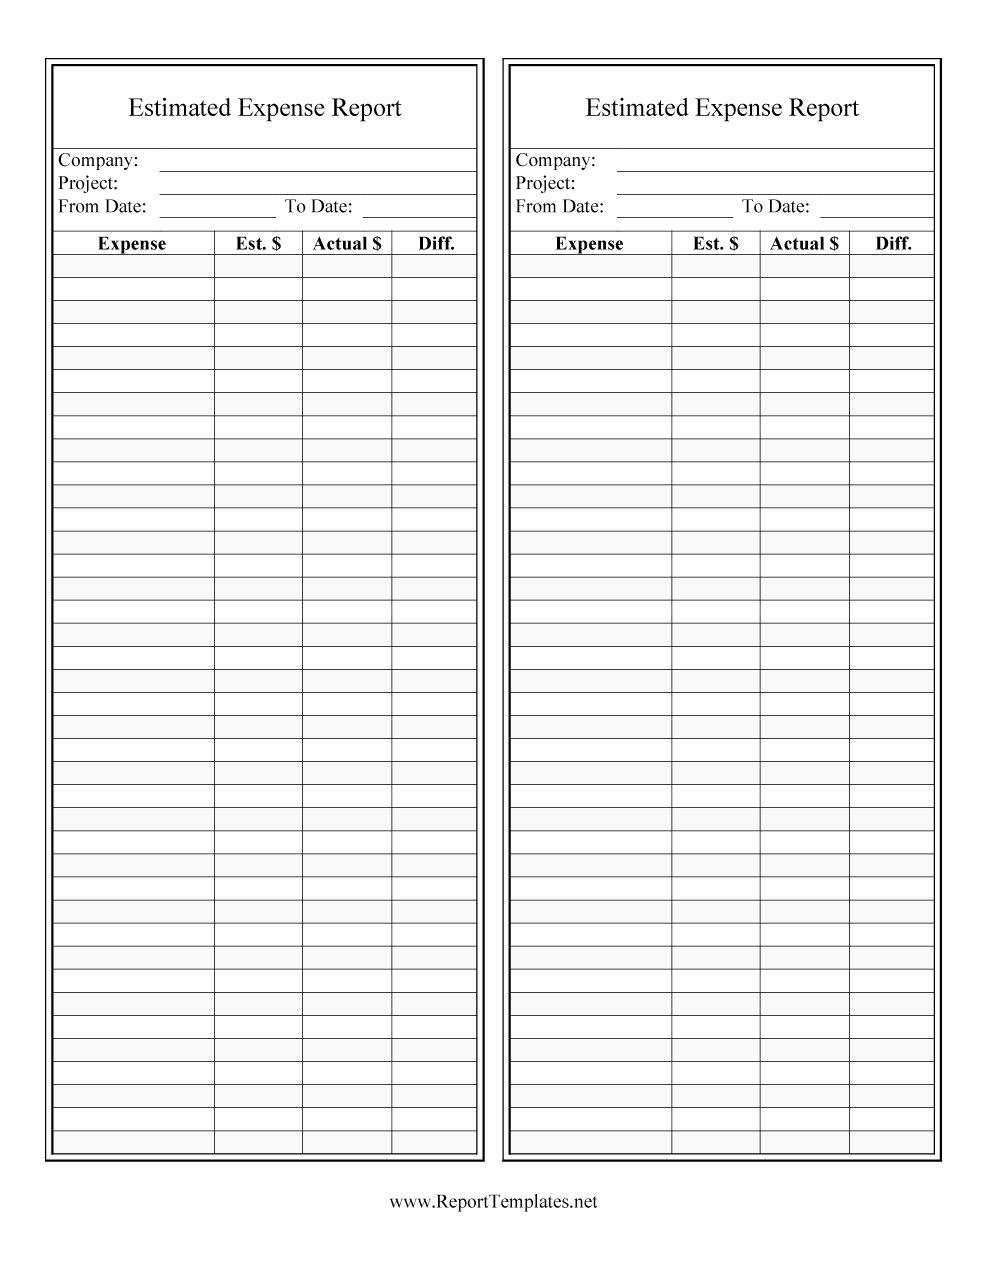 Free Expense Report Template Beautiful 40 Expense Report Templates to Help You Save Money